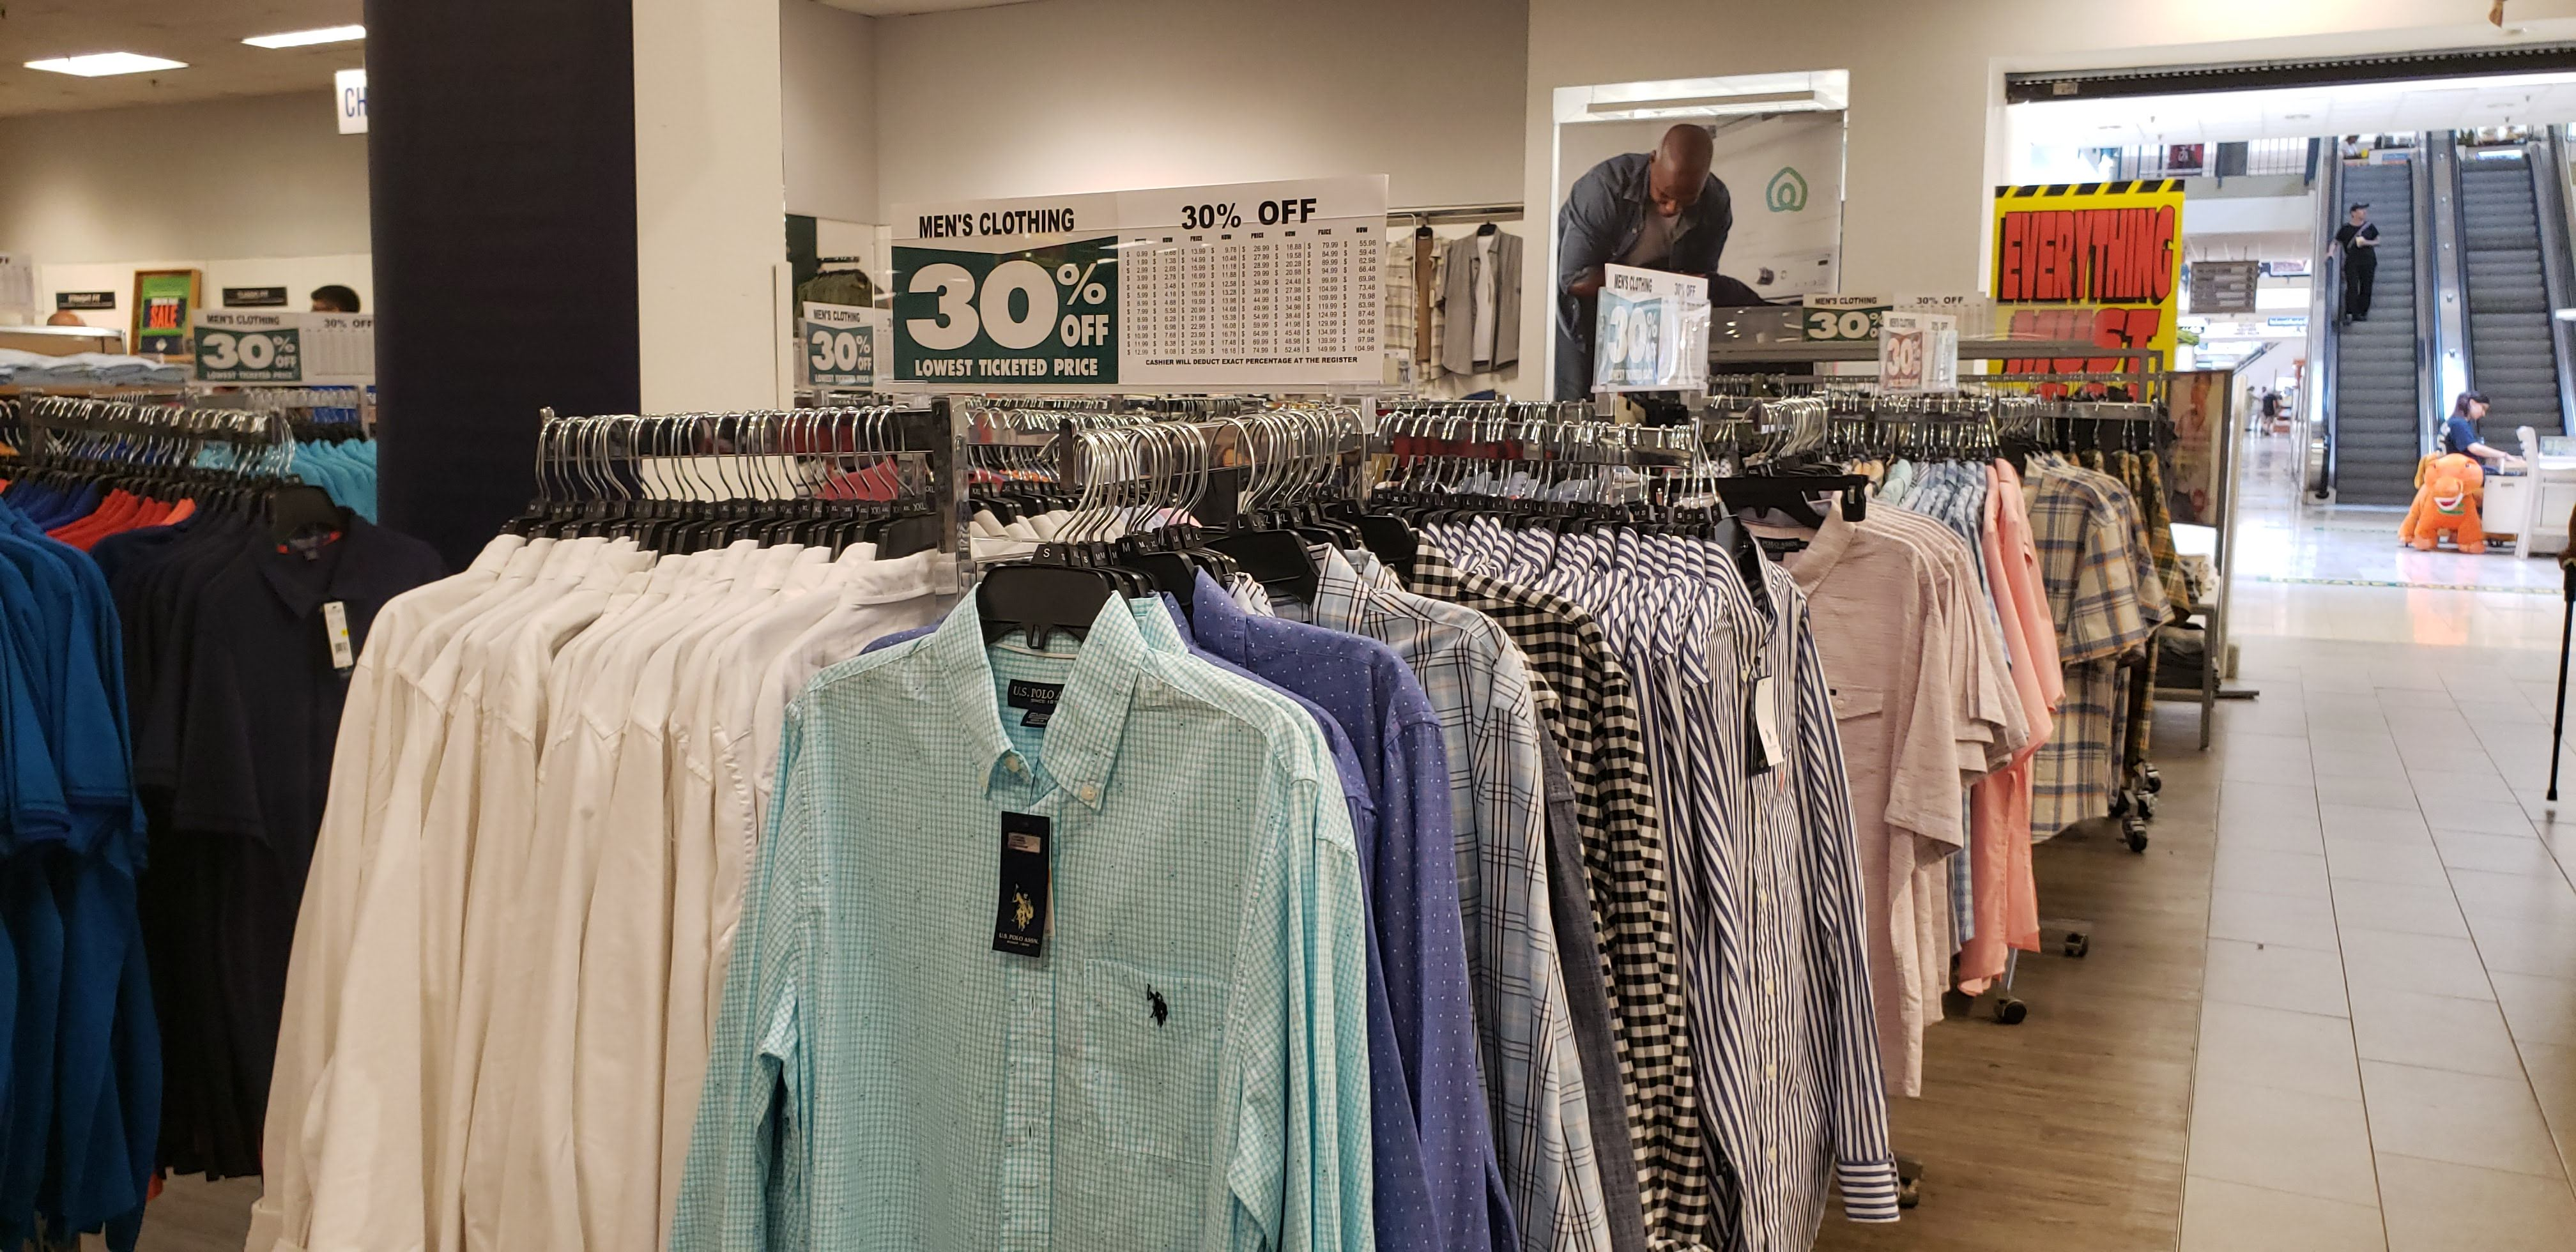 Sears at the Riverchase Galleria closing